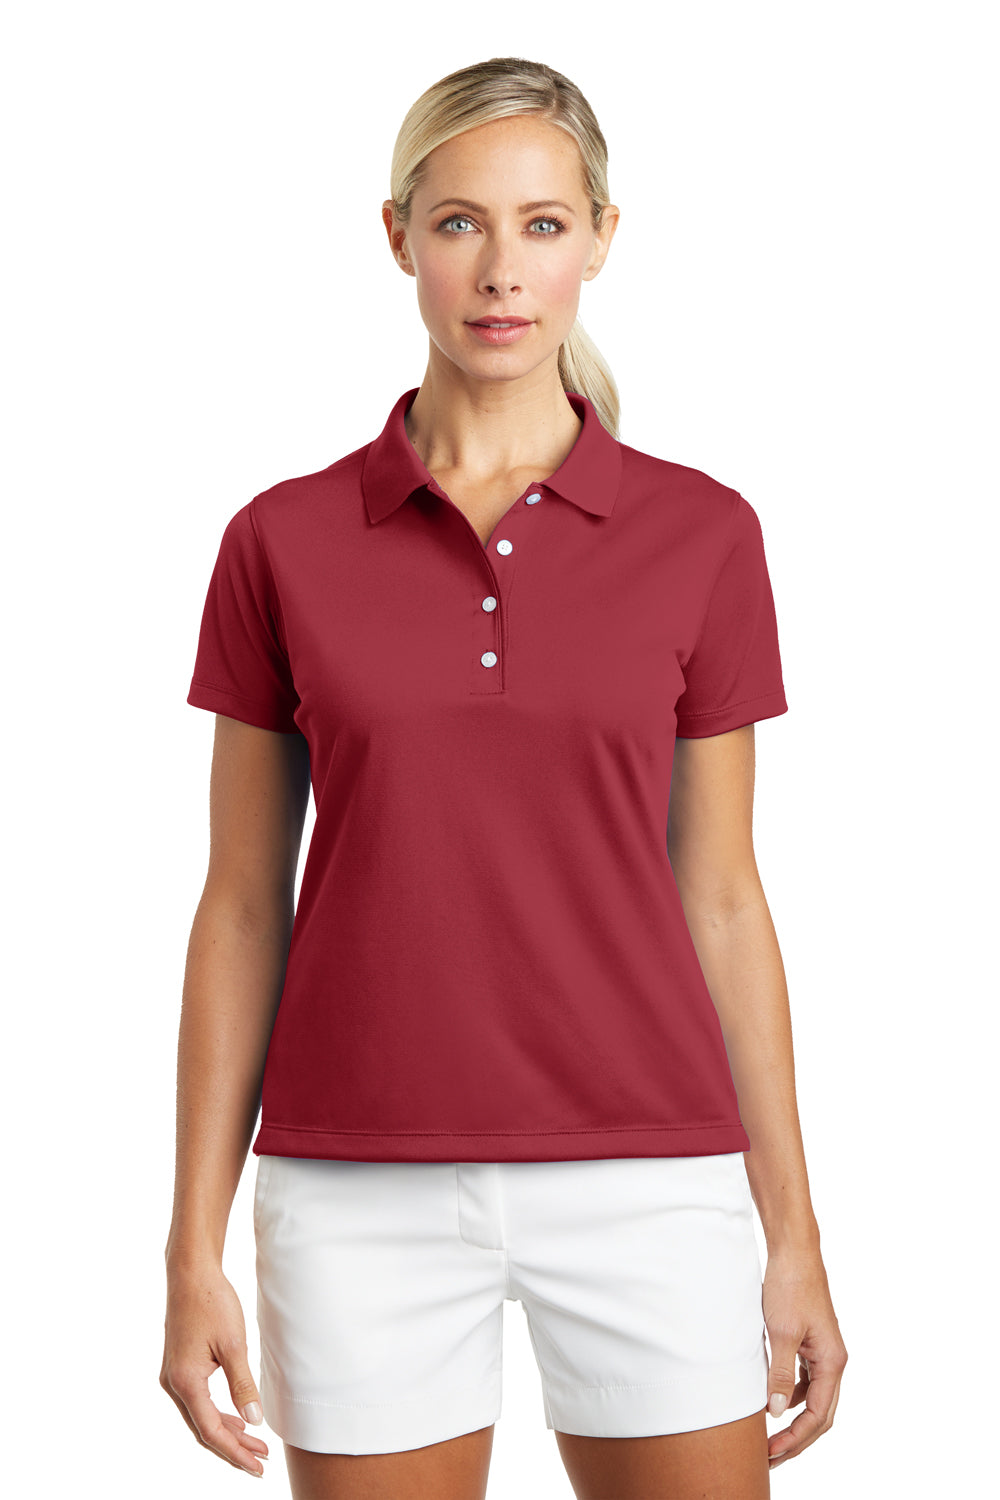 Nike 203697 Womens Tech Basic Dri-Fit Moisture Wicking Short Sleeve Polo Shirt Pro Red Front